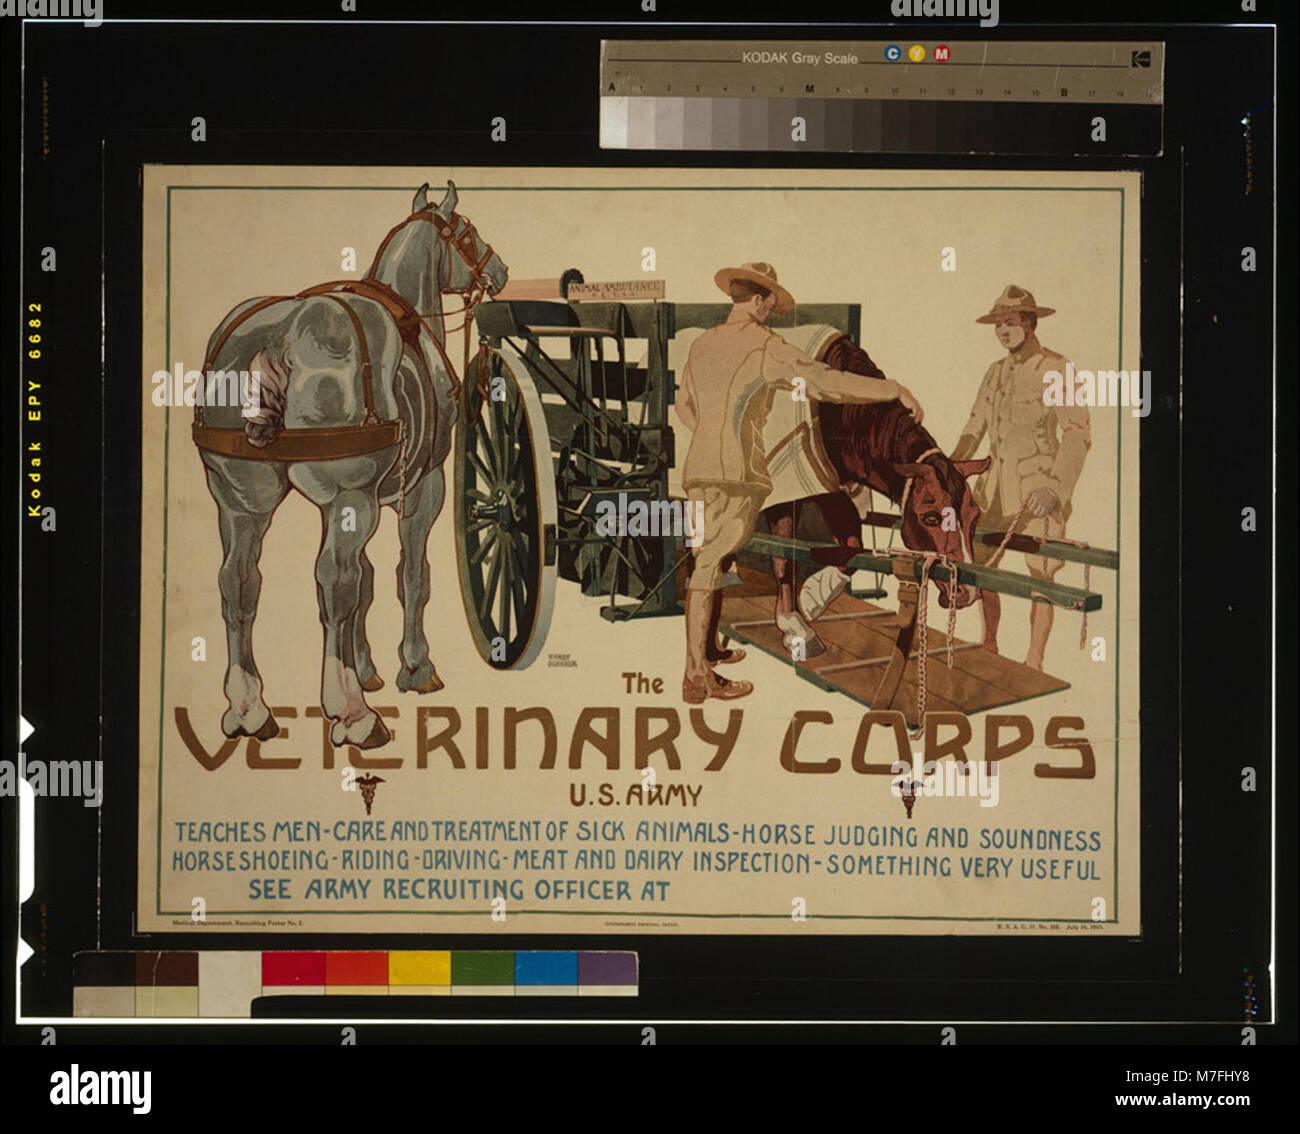 The Veterinary Corps, U.S. Army, teaches men care and treatment of sick animals; horse judging and soundness; horseshoeing; - Stock Image